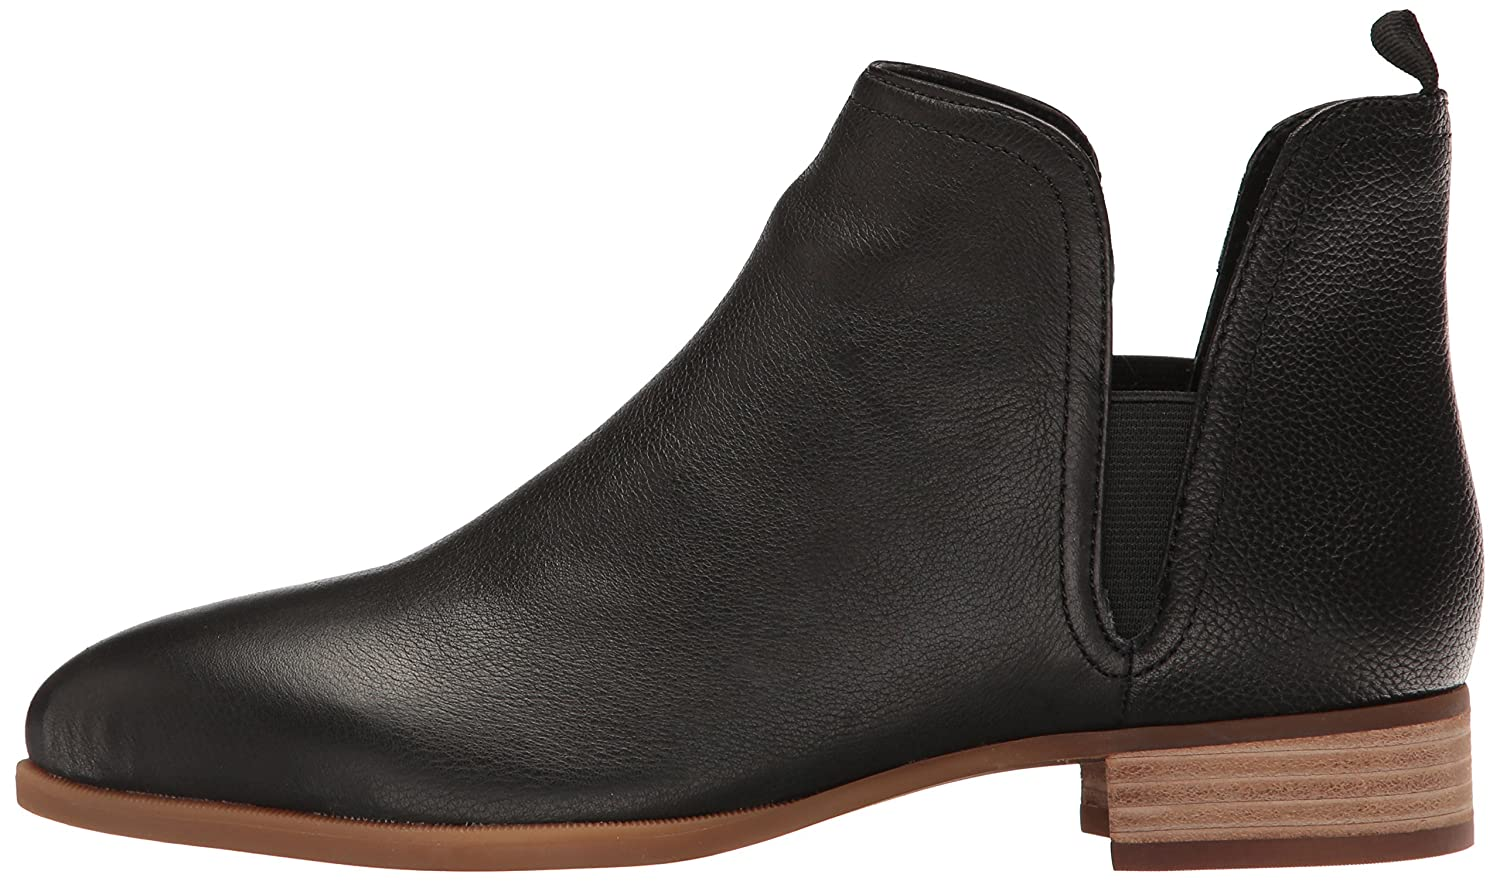 Nine West Women's 10 Nesrin Leather Boot B01N6514K5 10 Women's M US|Black 0e7a8f